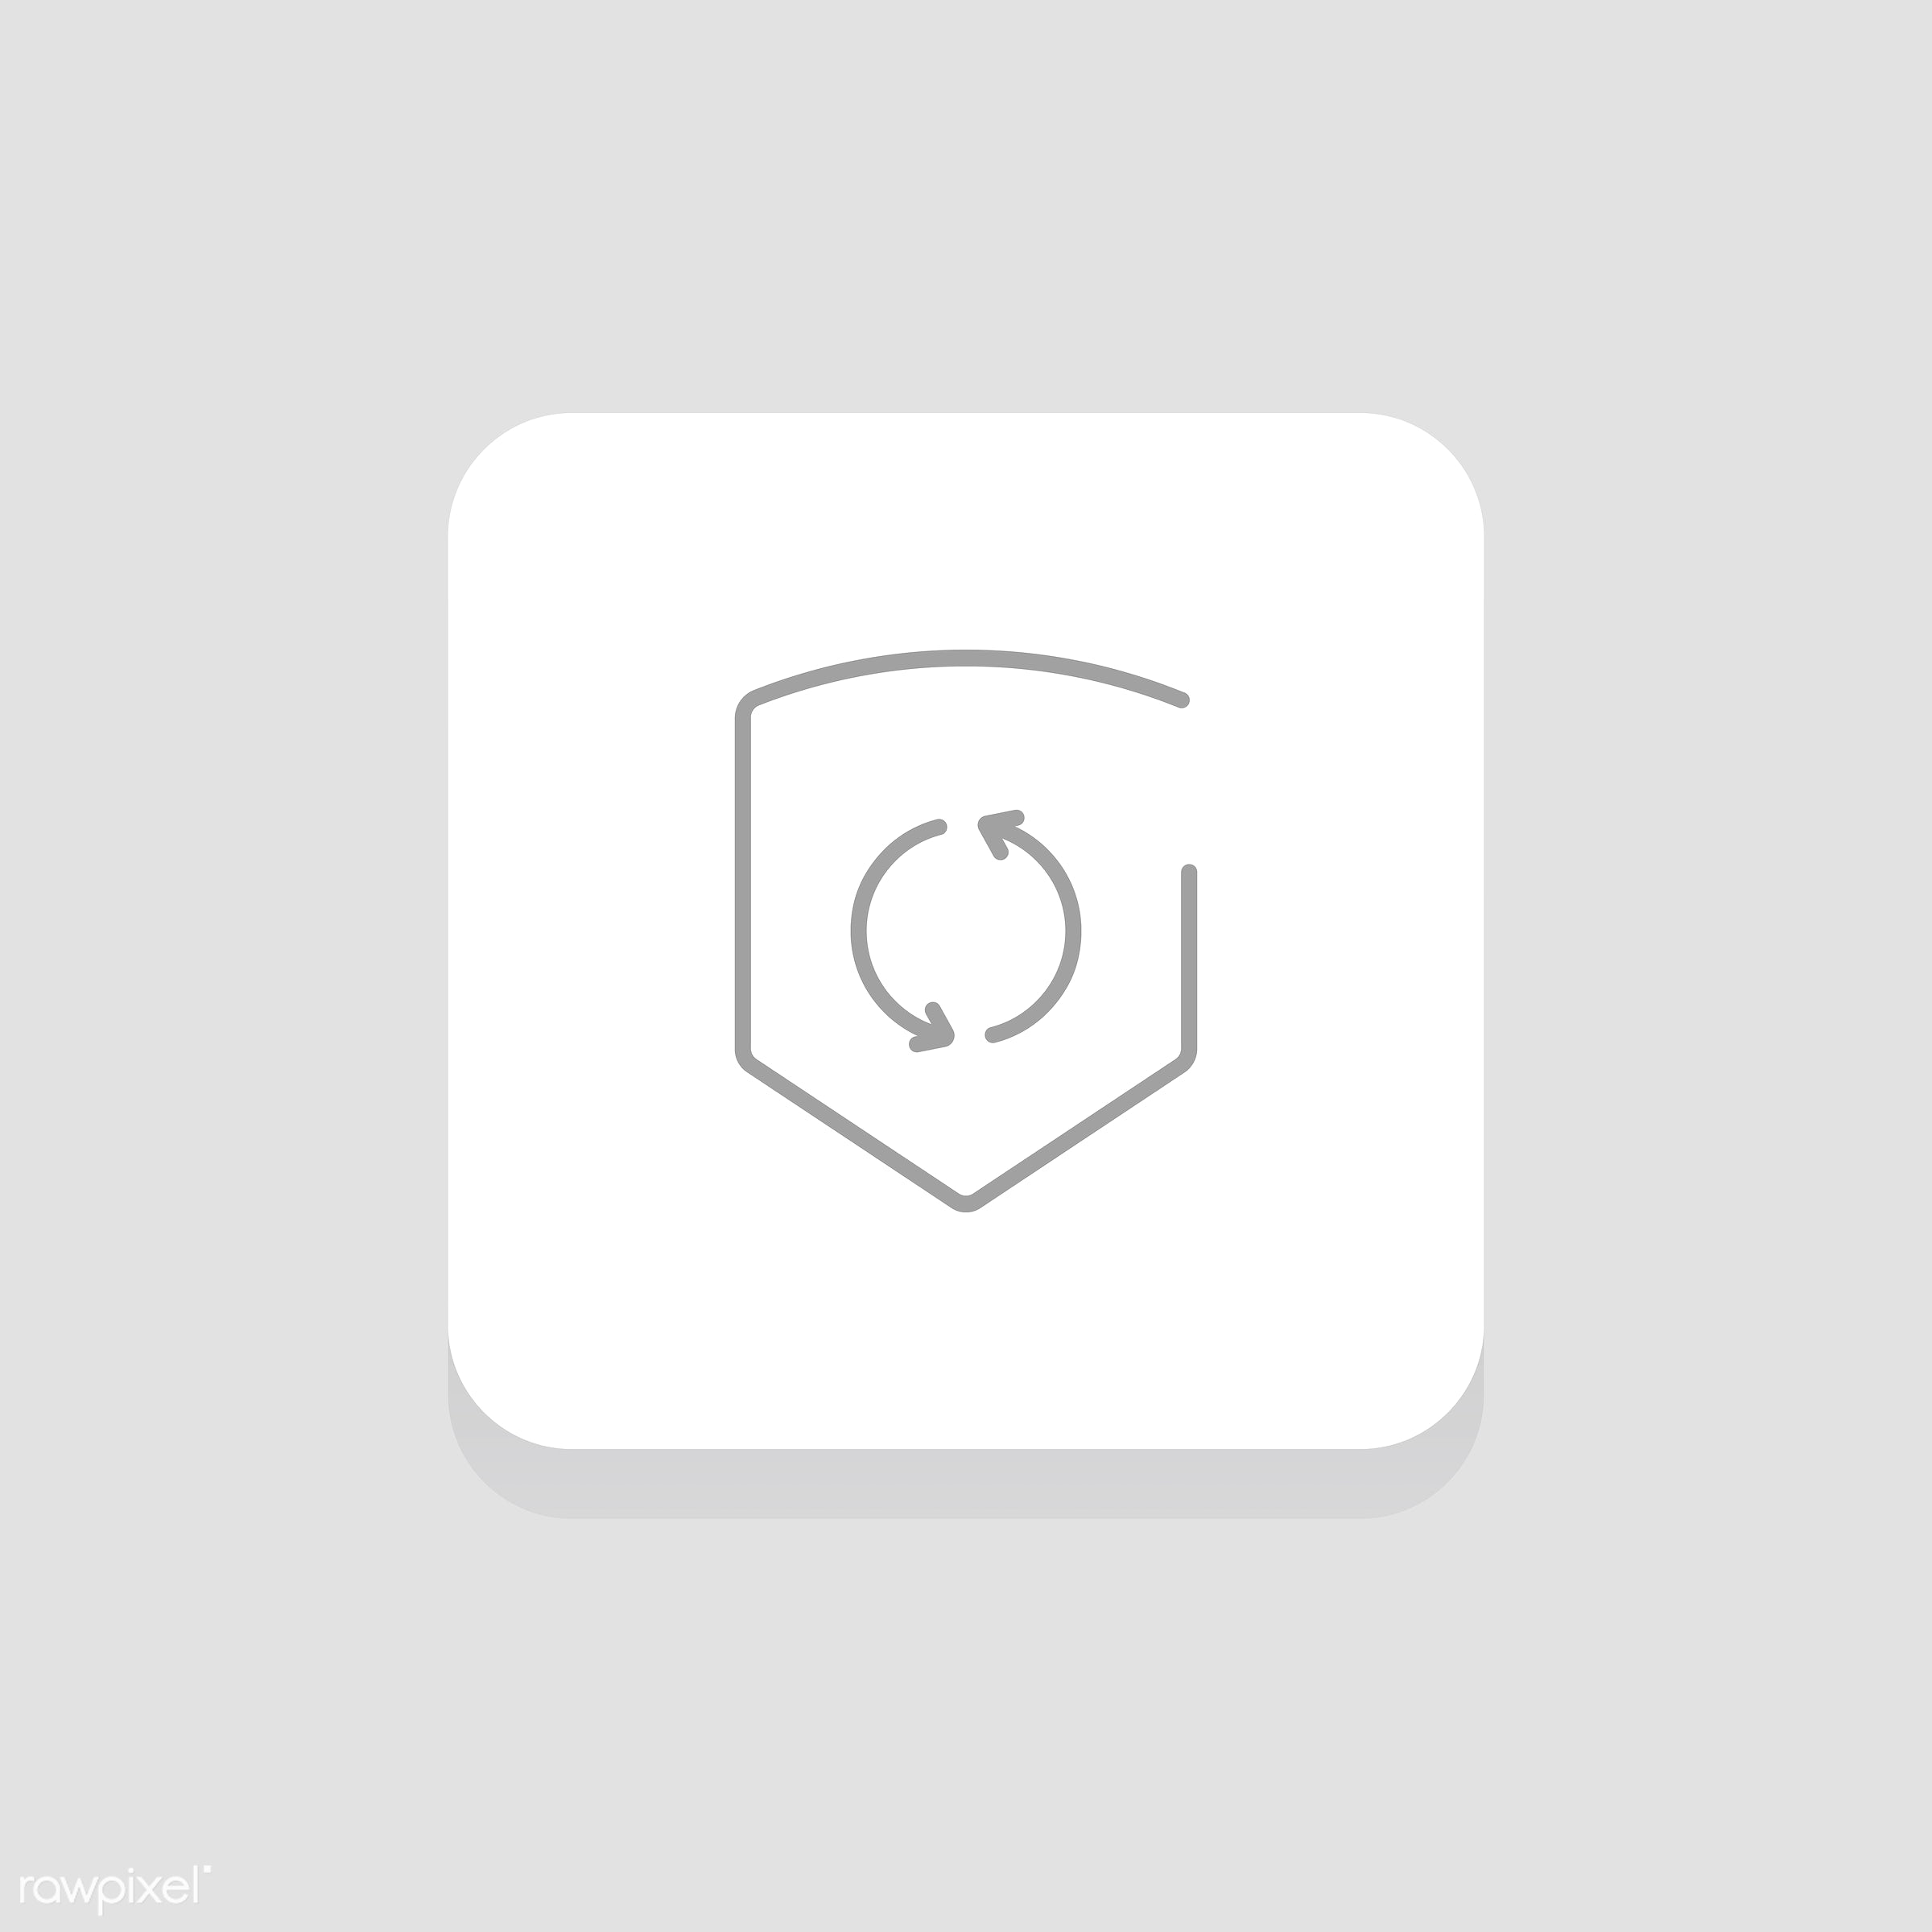 Vector of shield icon - shield, design, flat, graphic, icon, illustration, isolated, layout, style, symbol, vector, web,...